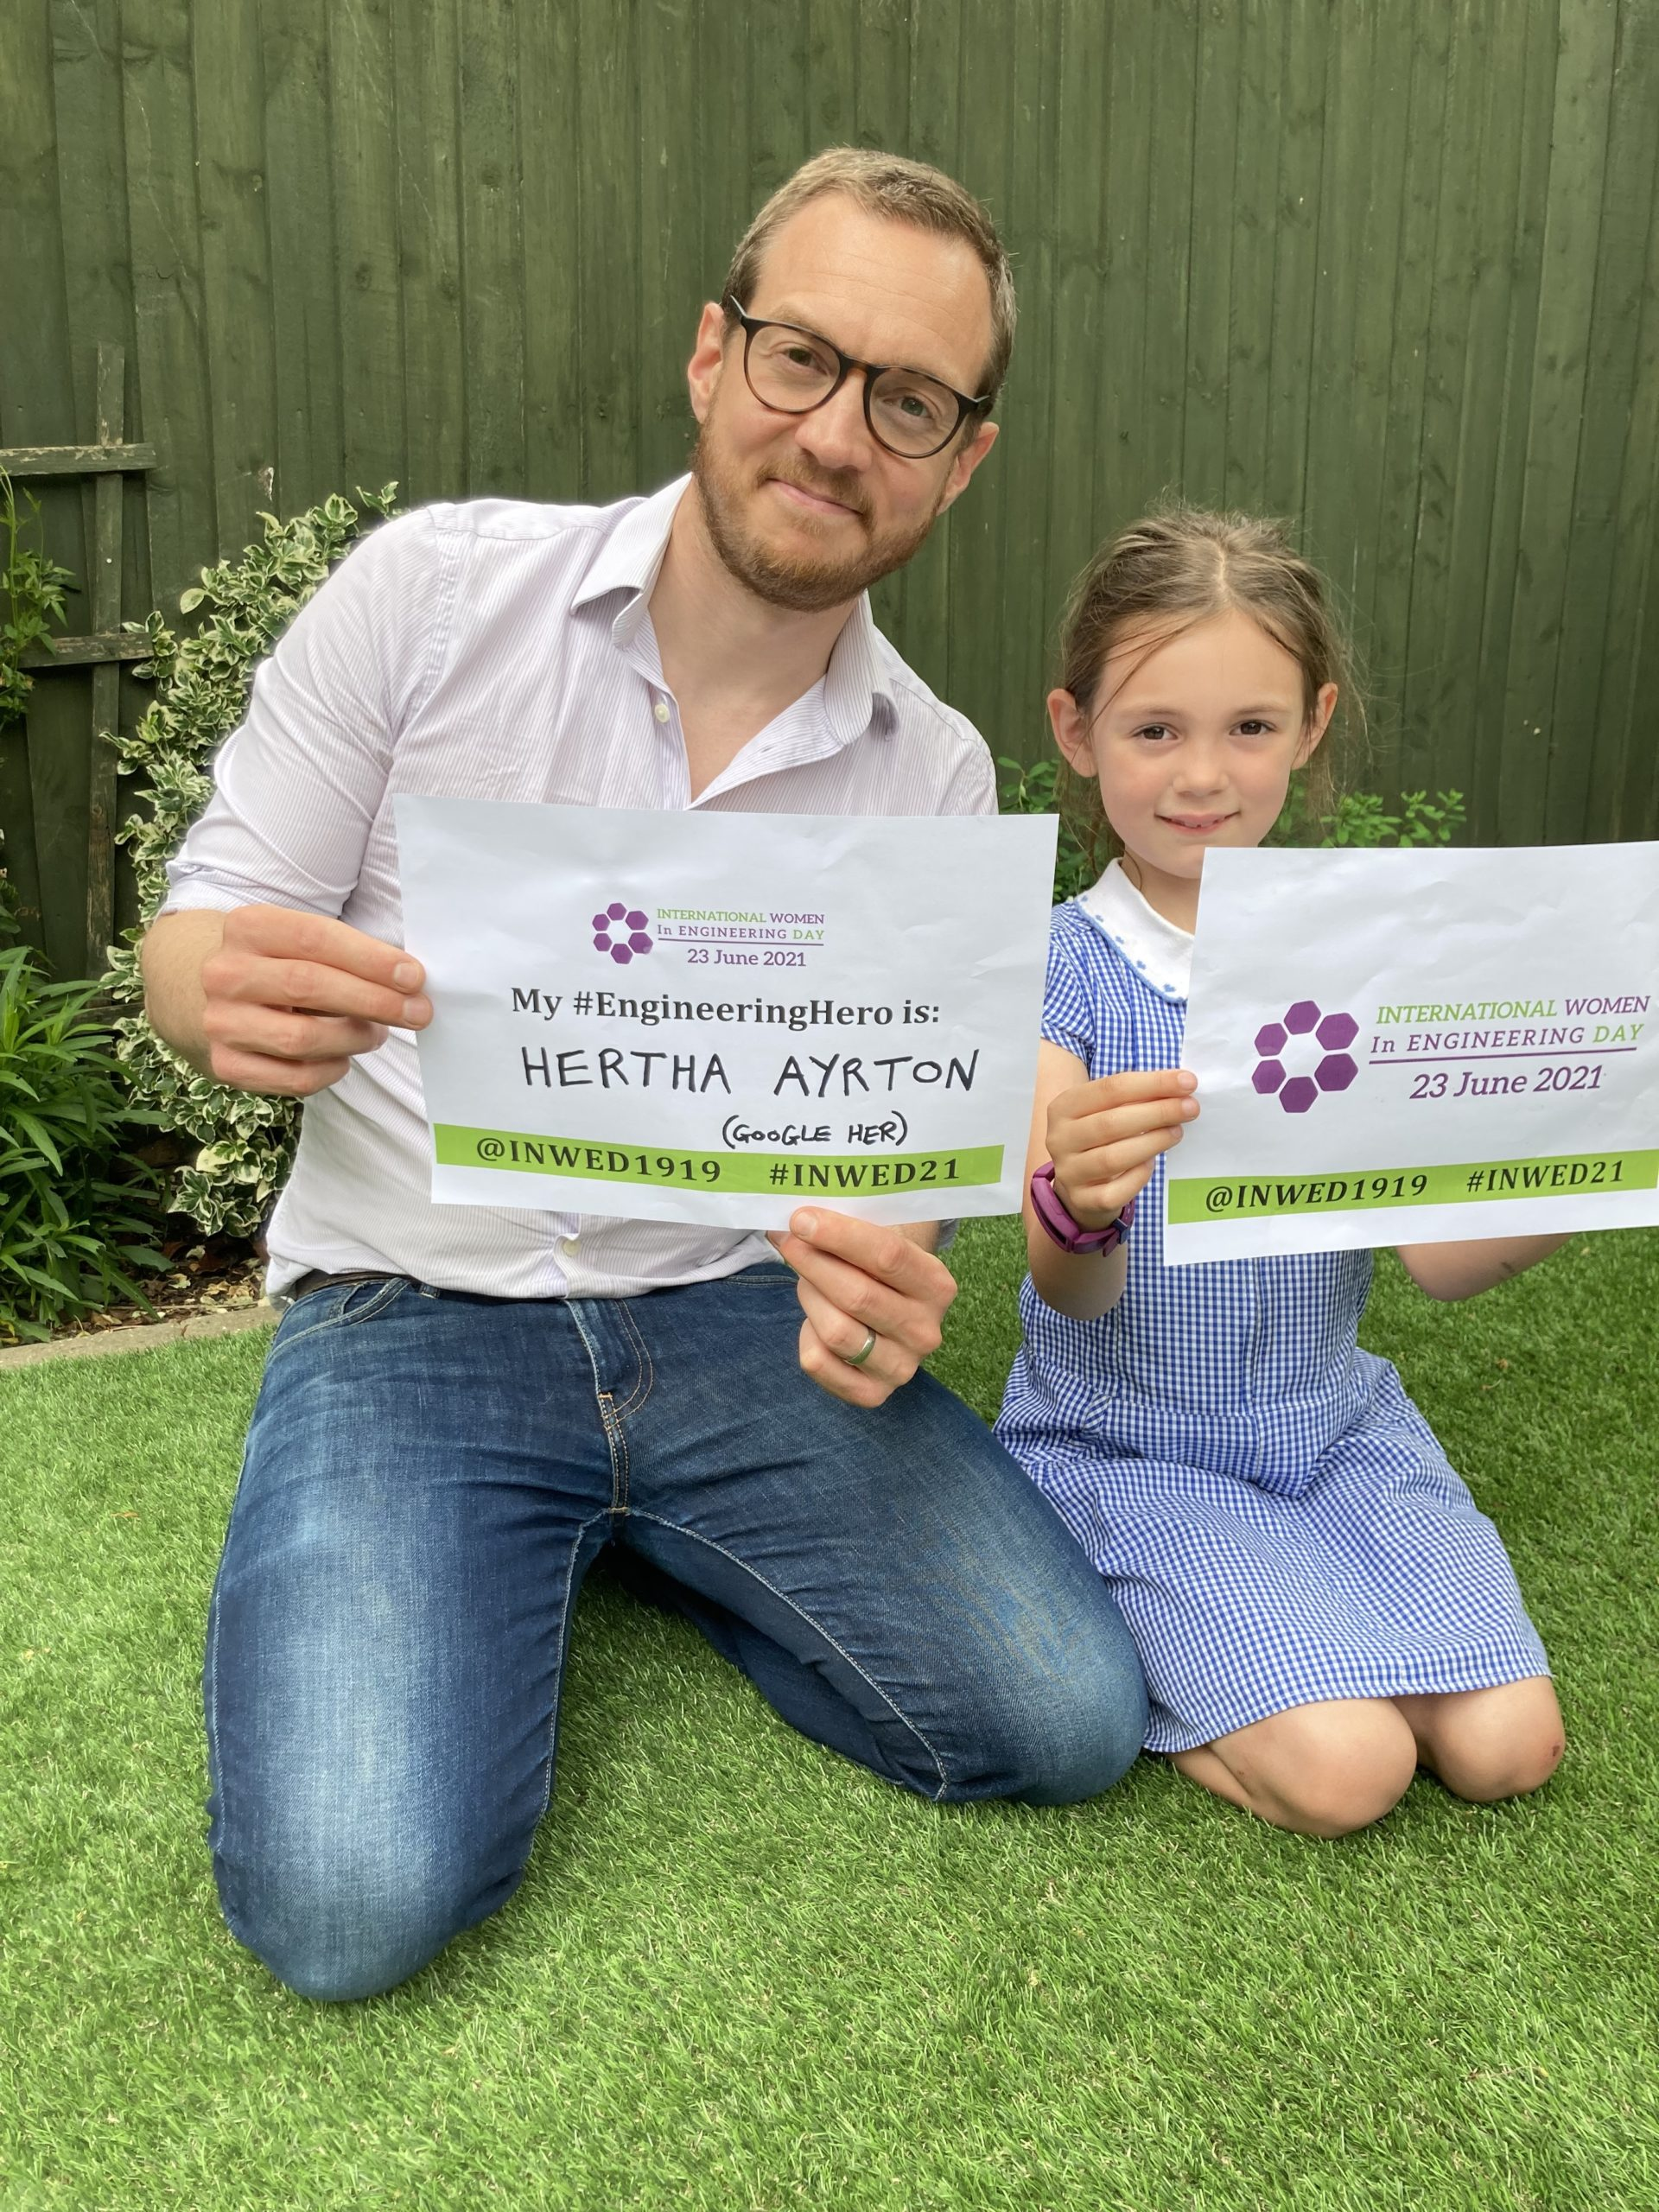 Photo of Mat Parker and his daughter holding signs to celebrate International Women In Engineering Day